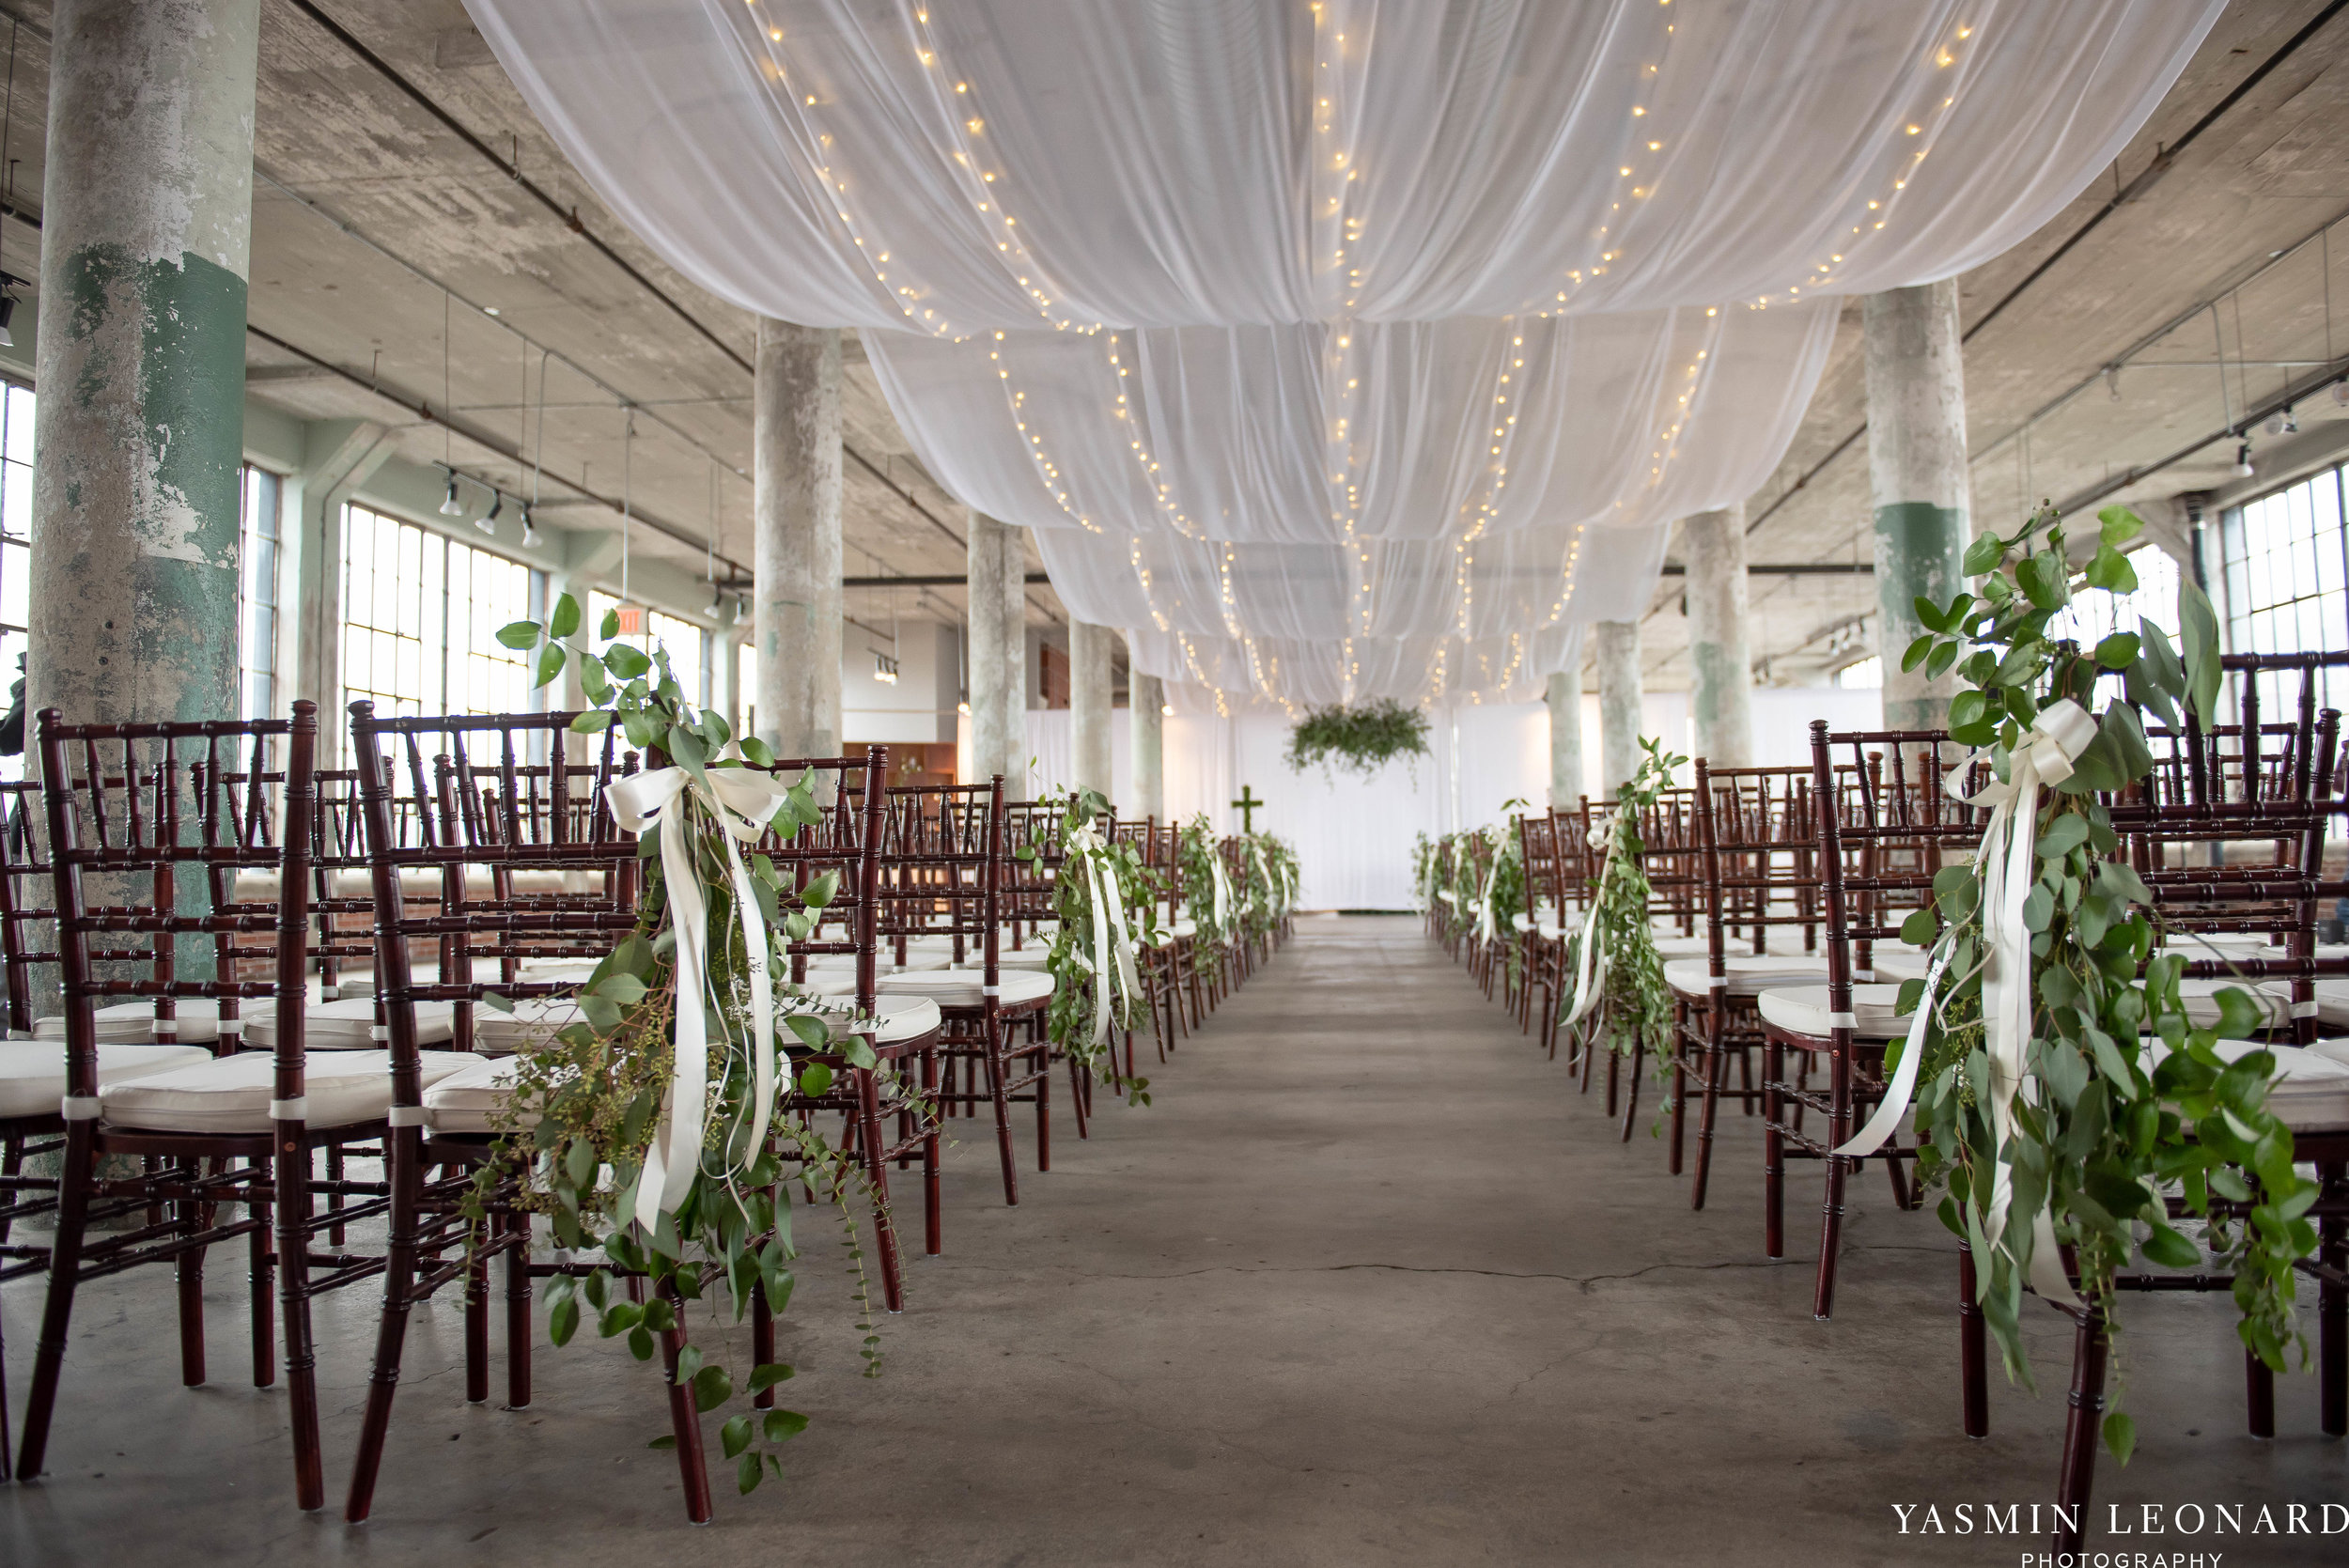 The Lofts at Union Square - Unions - High Point Weddings - NC Weddings - NC Wedding Photographer - Yasmin Leonard Photography - Just Priceless - Green Pink and Gold Wedding - Elegant Wedding-2.jpg